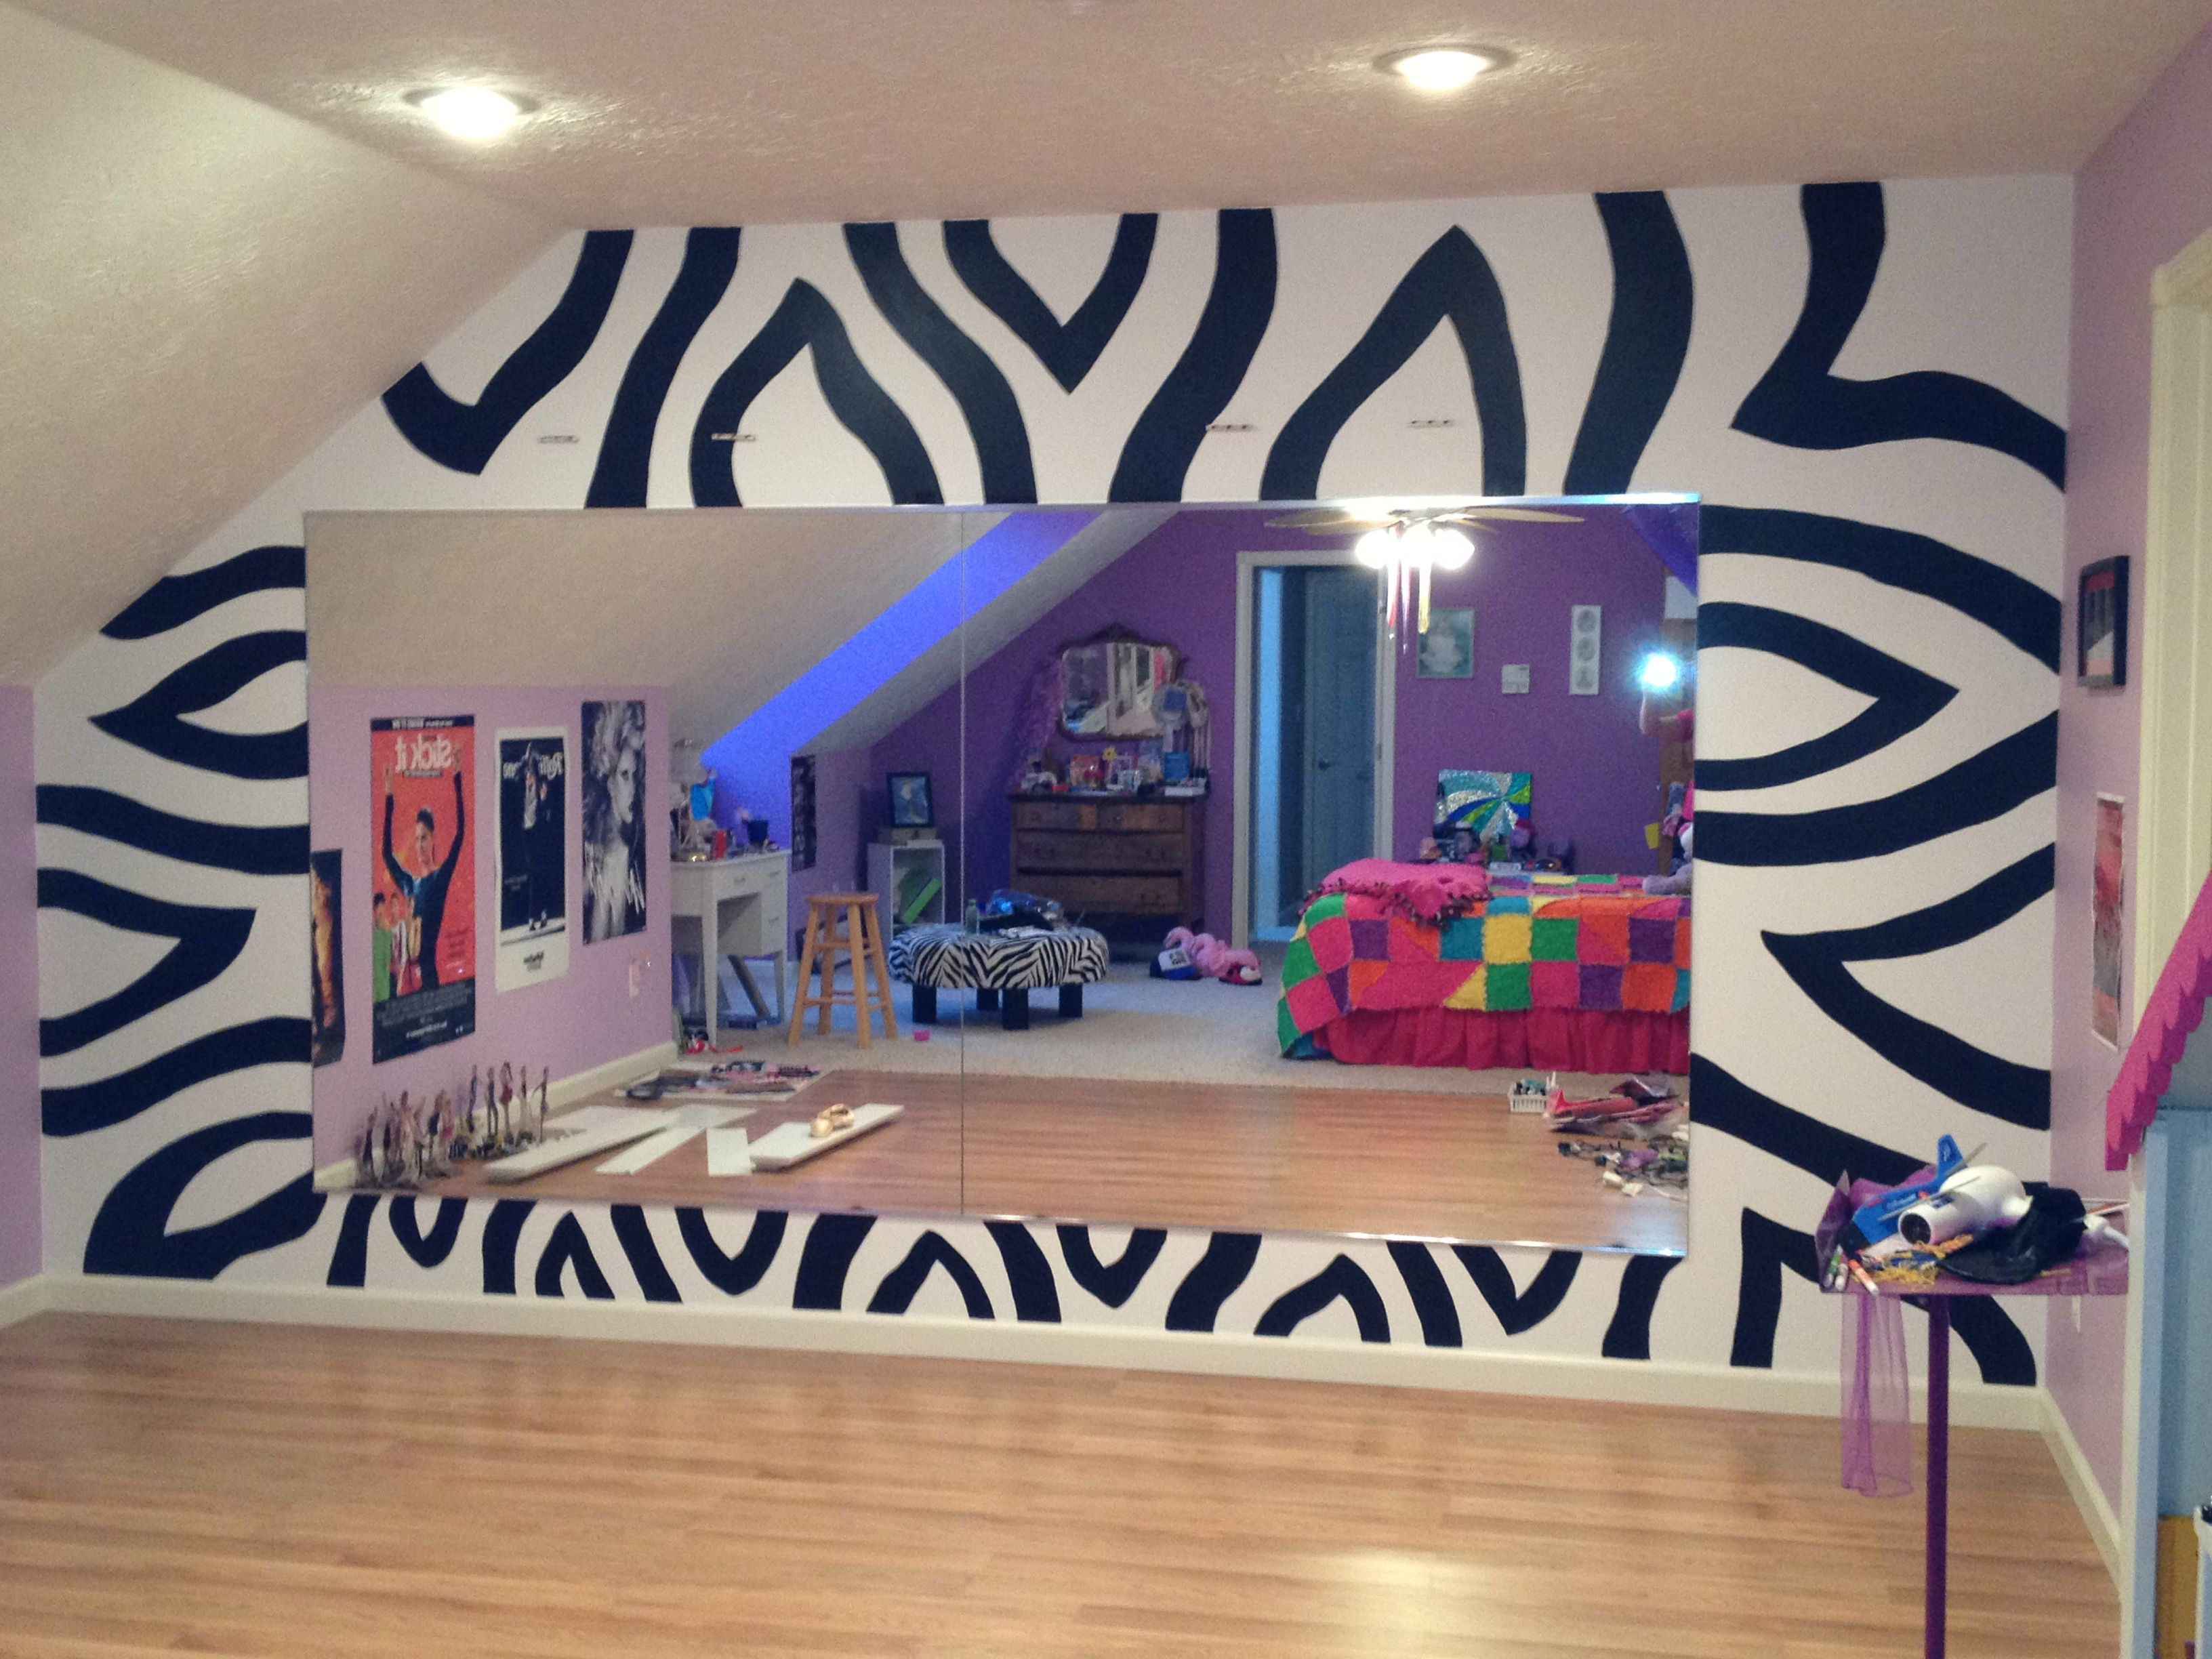 My Daughter's New Zebra Wall :) She Drew On The Design And